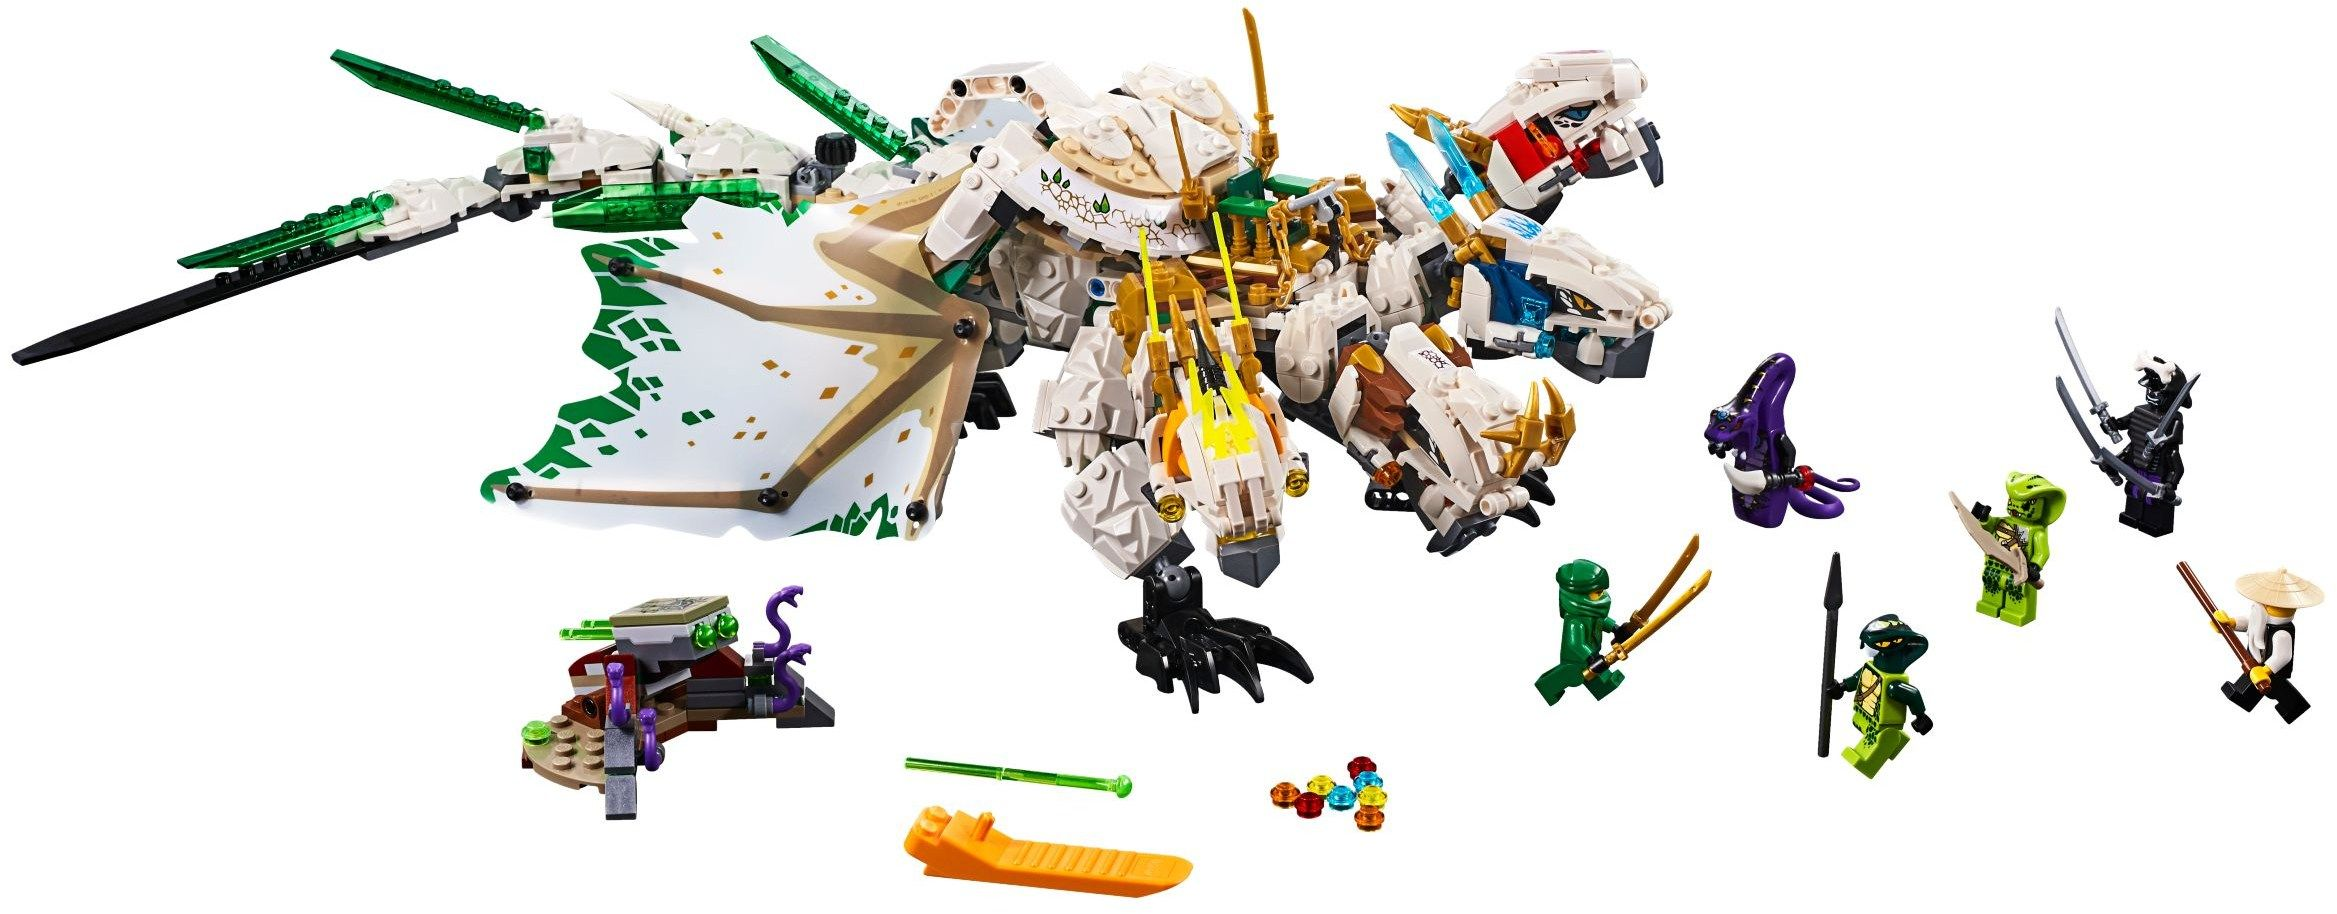 Pin By Wiki Brick On Wiki Brick In 2020 Lego Ninjago Ninjago Ninjago Dragon